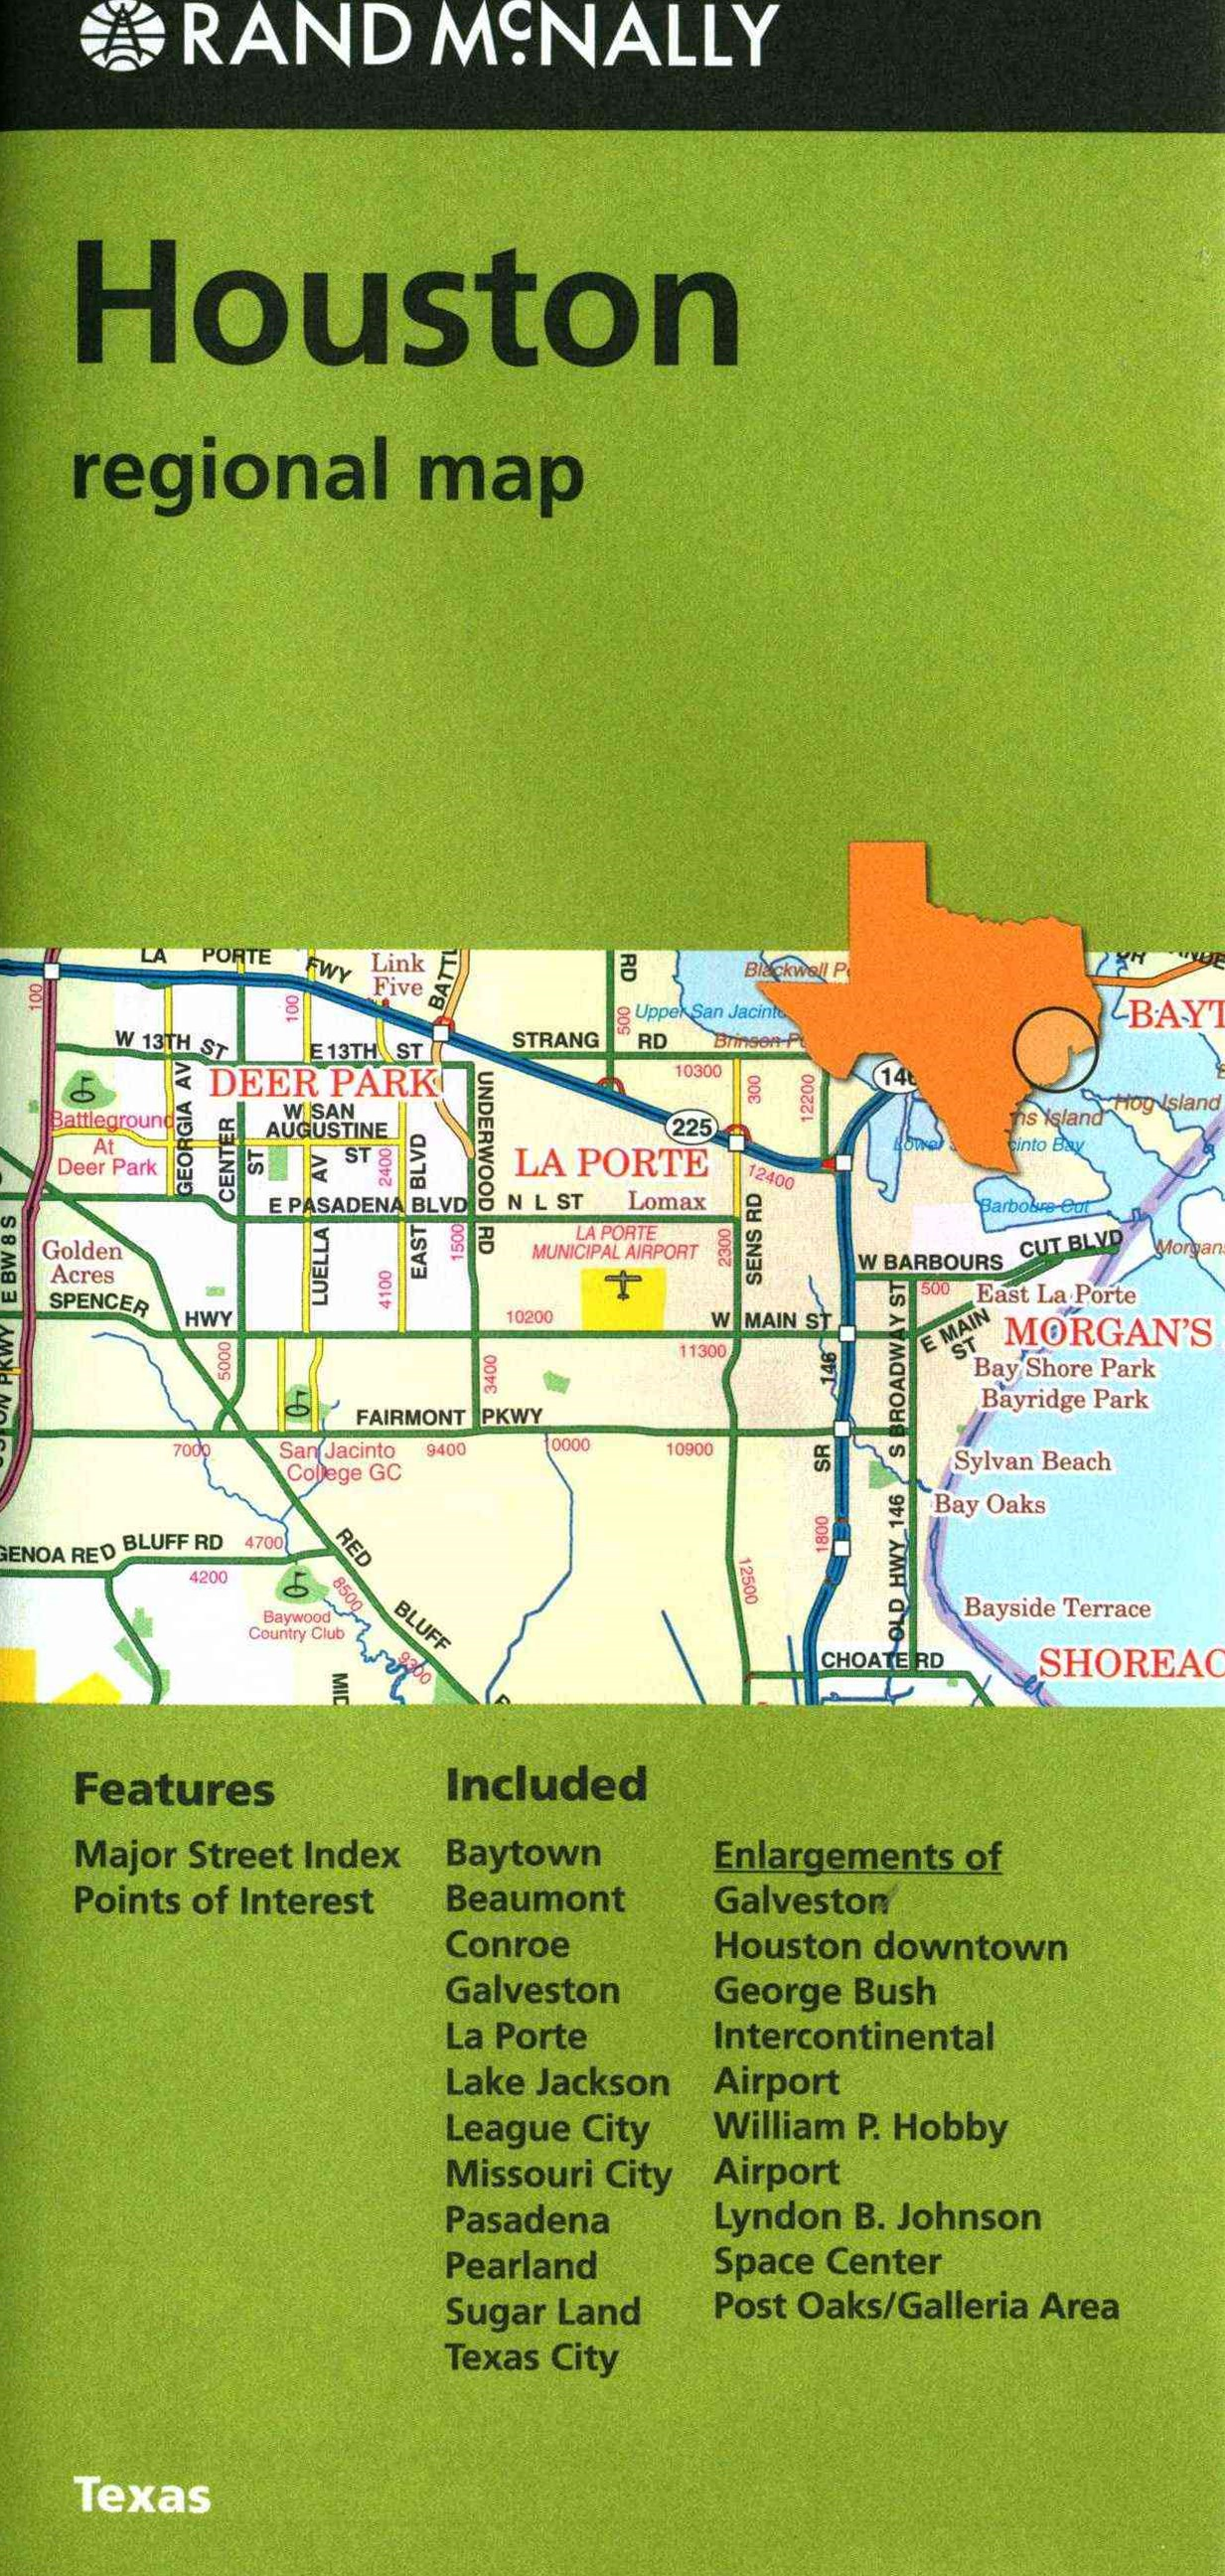 Rand McNally Houston regional map, Texas